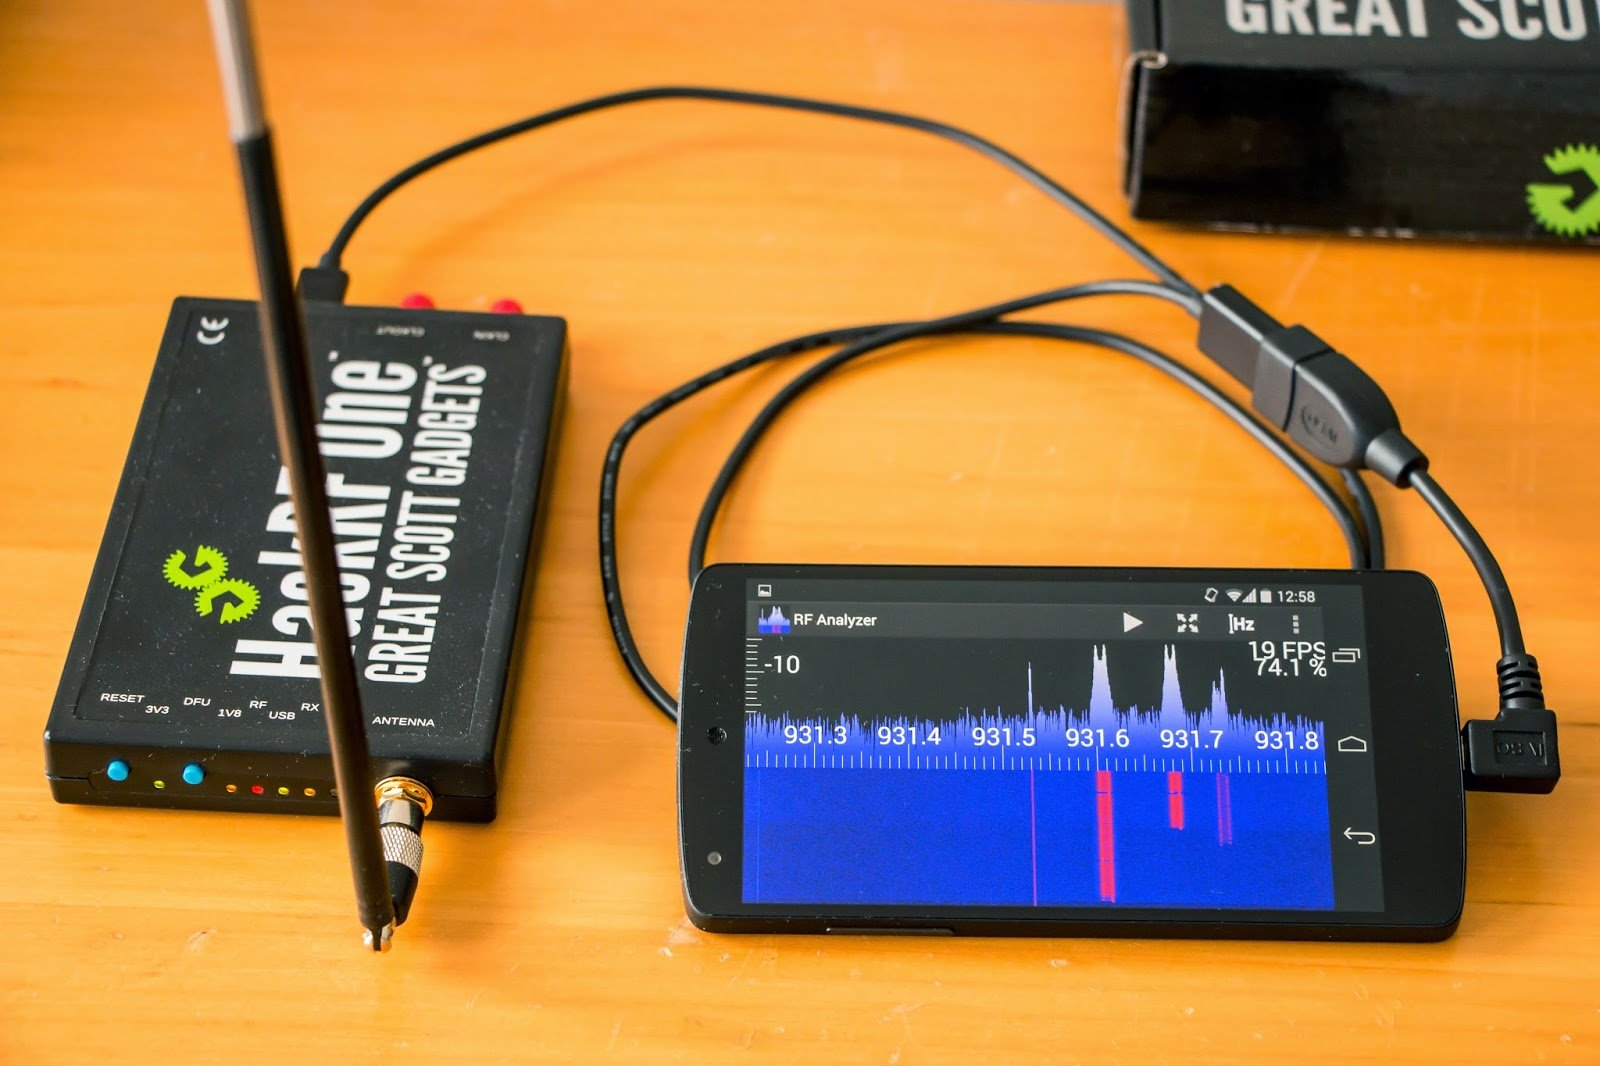 Rf Analyzer Android App For The Hackrf Rtl Sdr Com